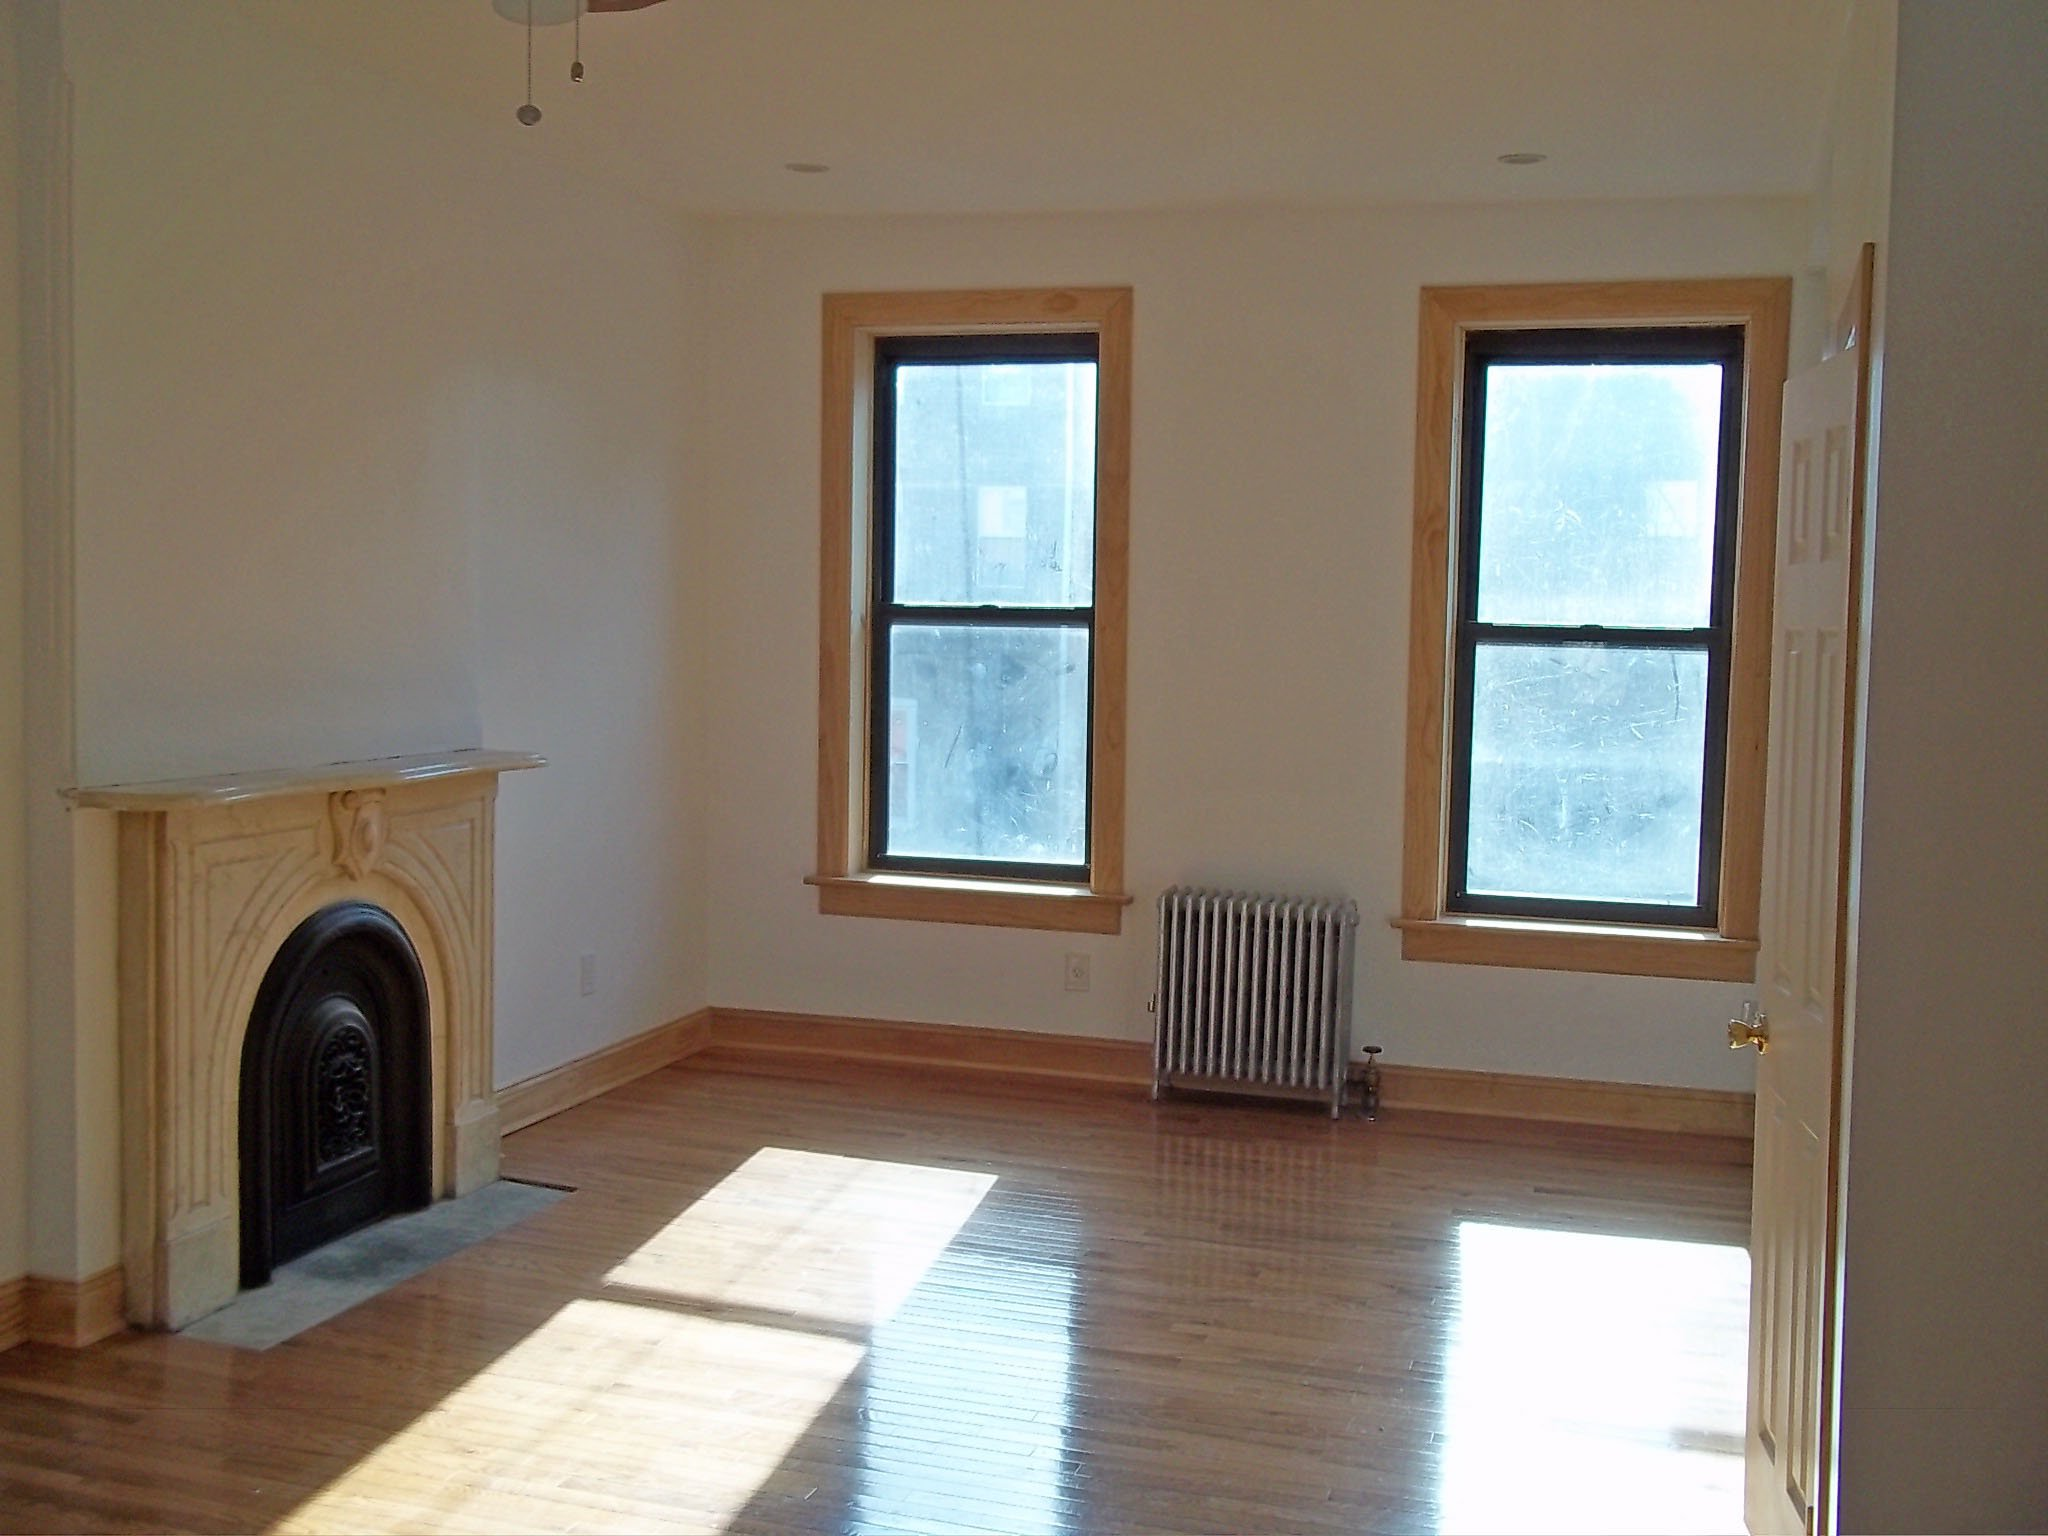 Bedford stuyvesant 1 bedroom apartment for rent brooklyn for 1 bedroom apartments